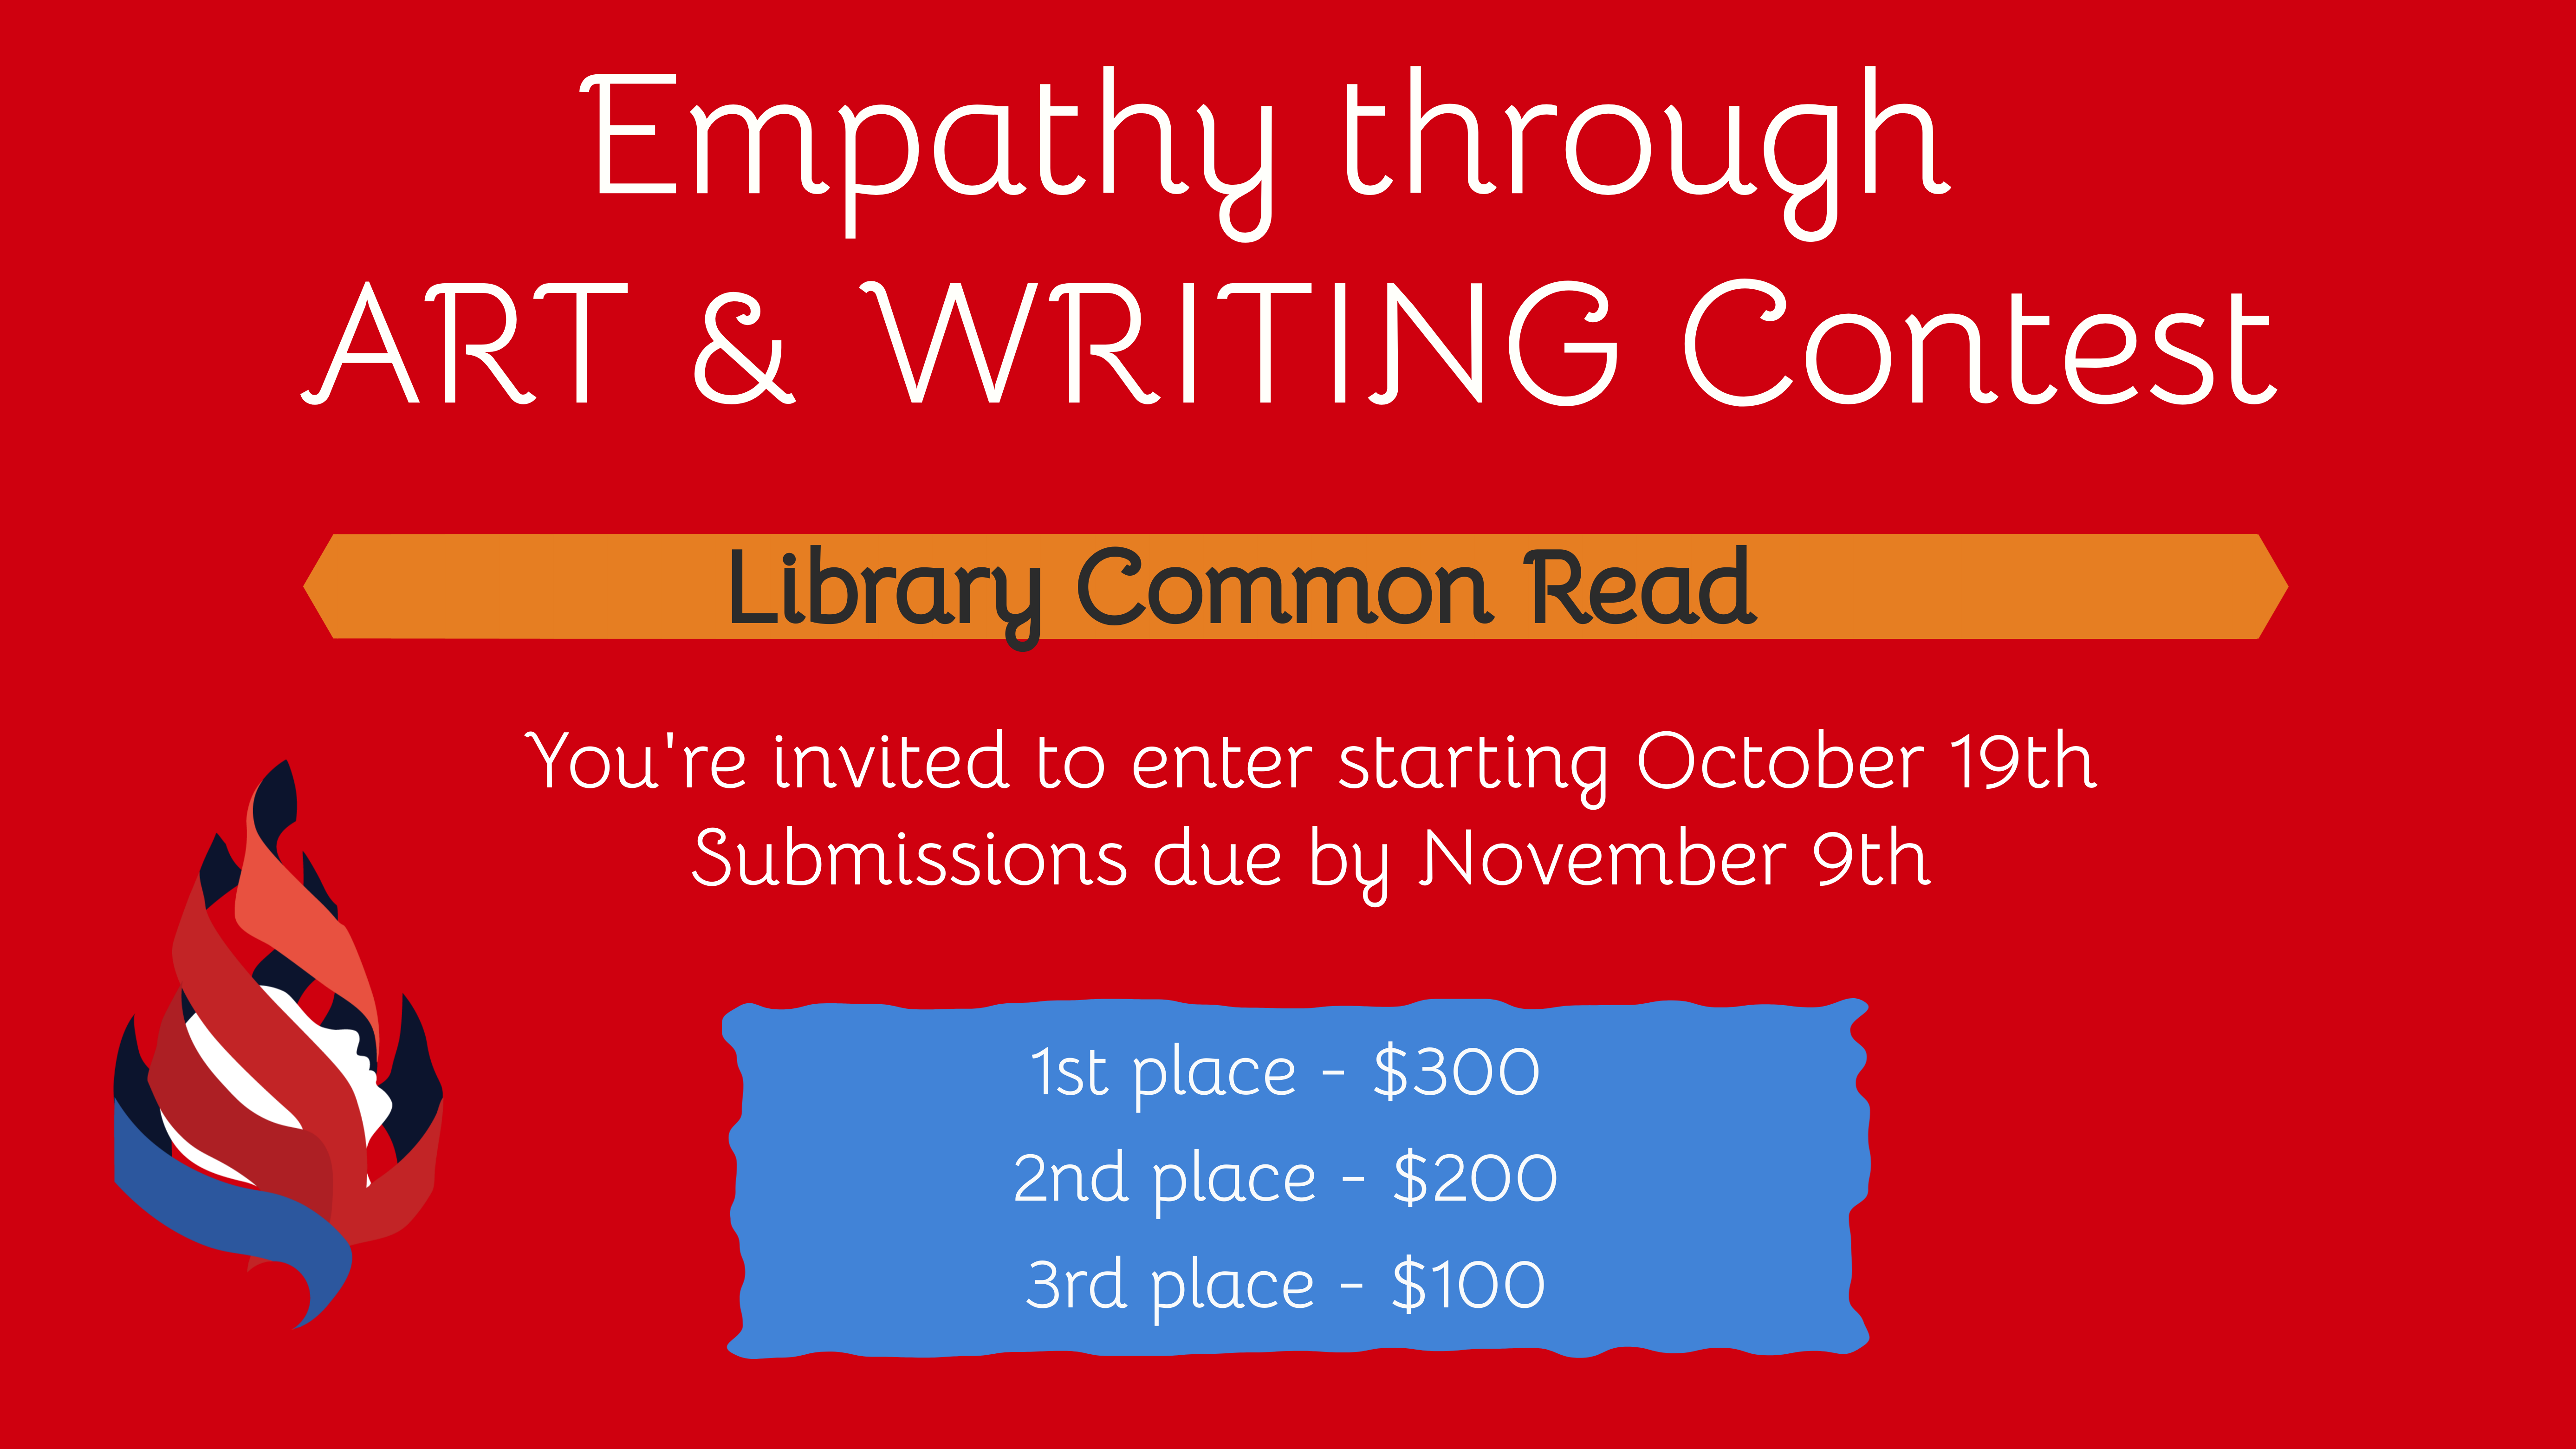 Graphic for Empathy through art and writing contest